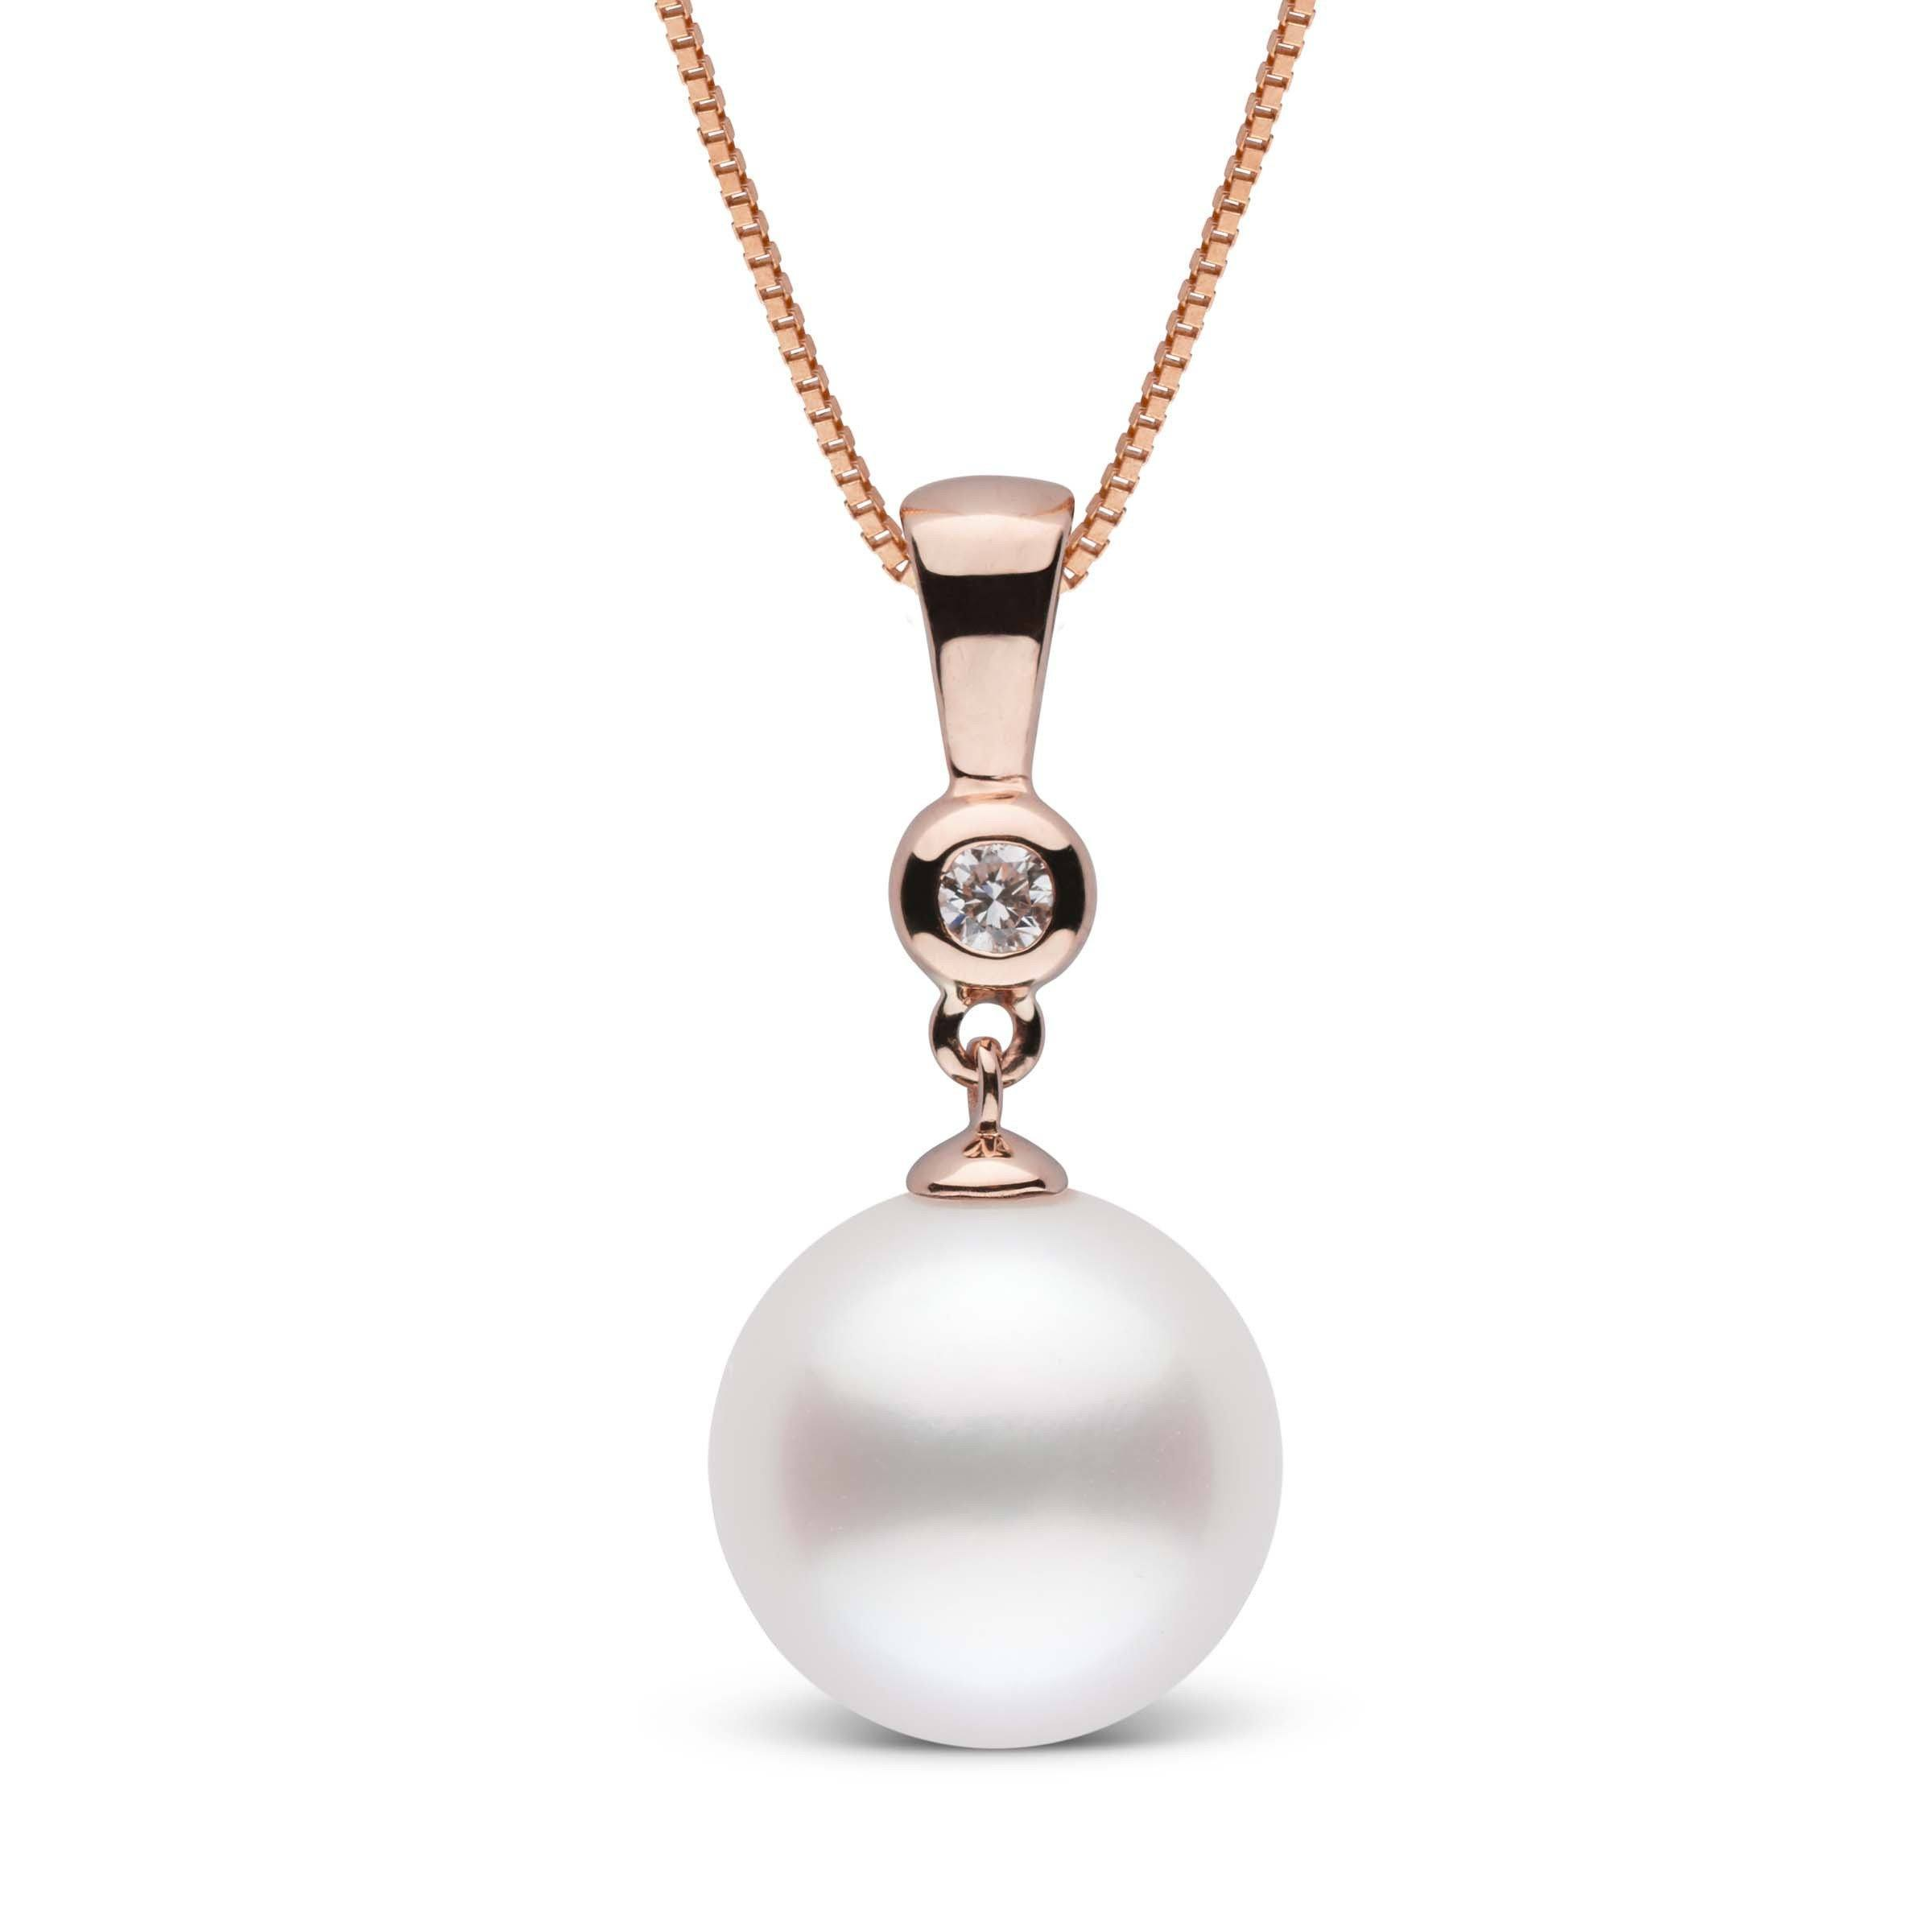 Romantic Collection White 11.0-12.0 mm South Sea Pearl & Diamond Pendant